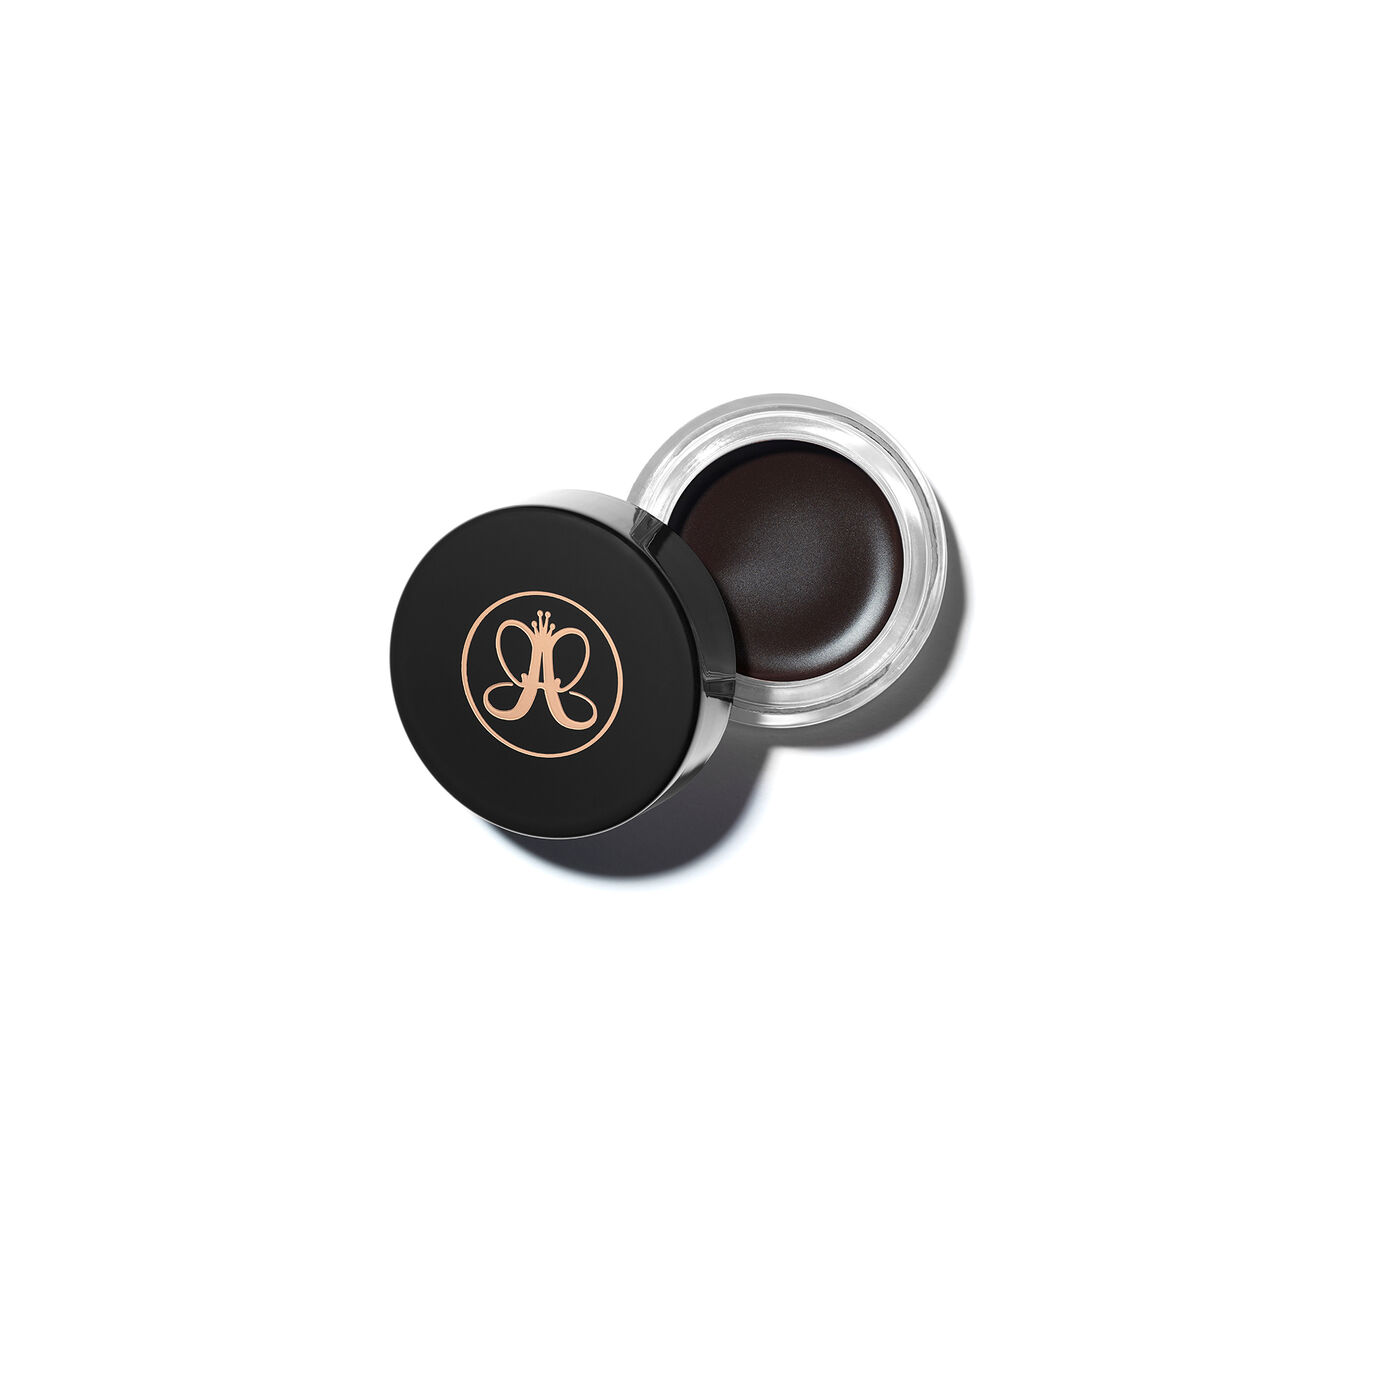 Waterproof Crème Color   Jet by Anastasia Beverly Hills